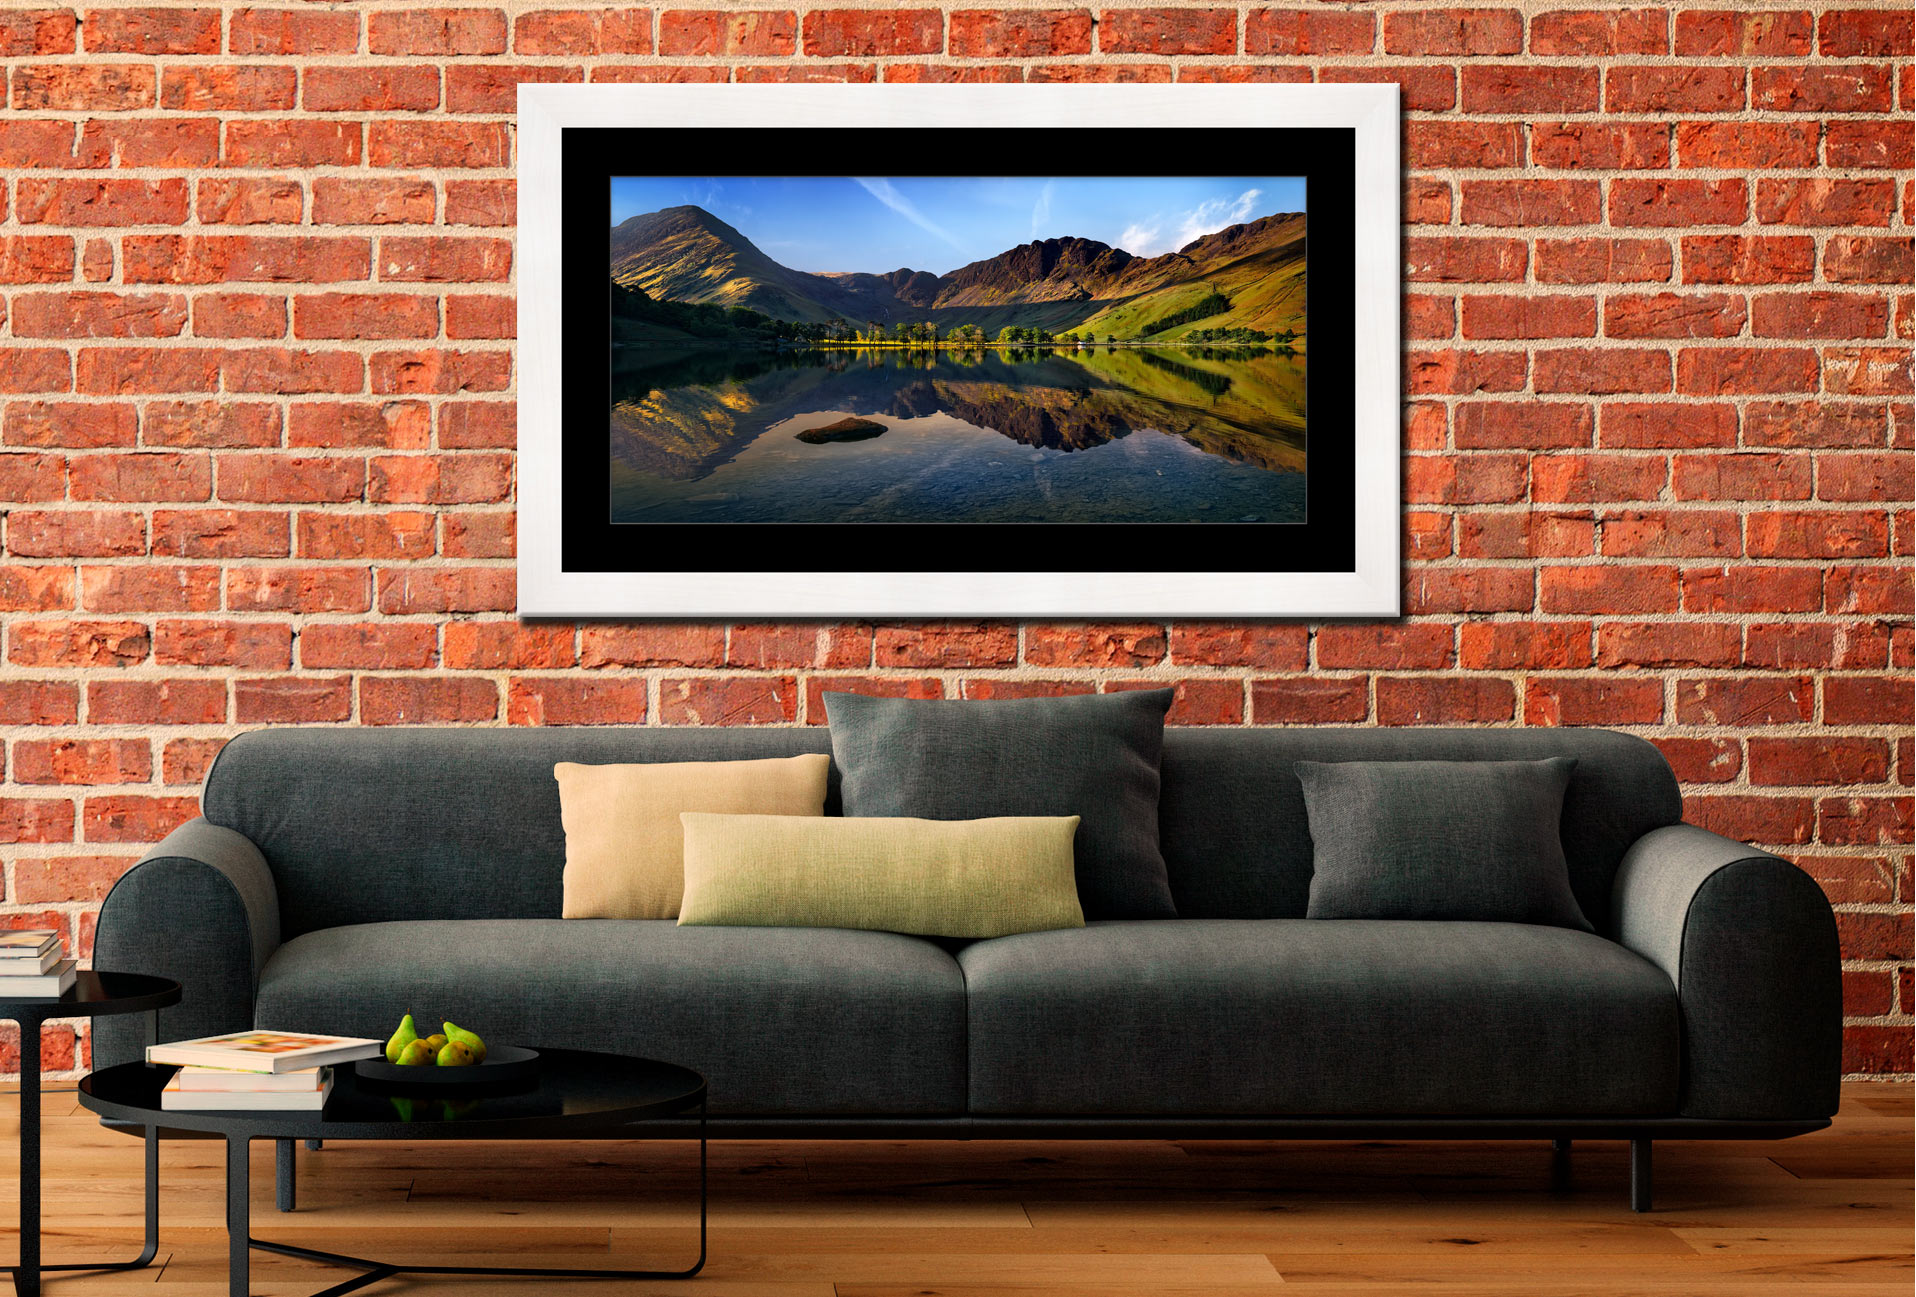 Stillness at Buttermere - Framed Print with Mount on Wall